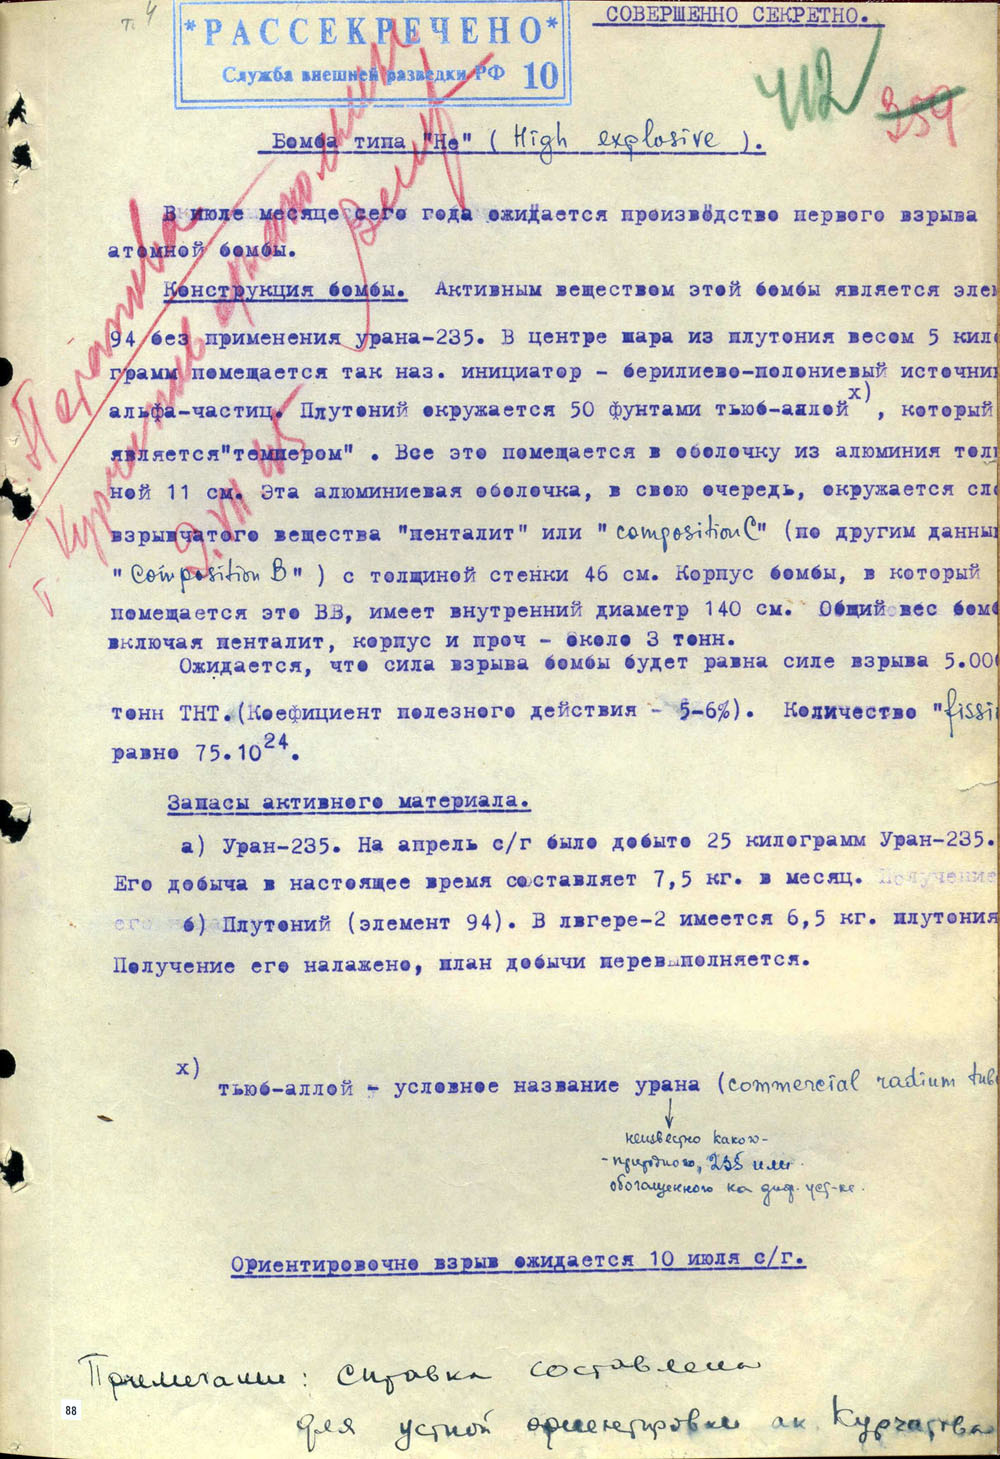 Beria-letter-on-US-atomic-bomb-work-Feb-1945